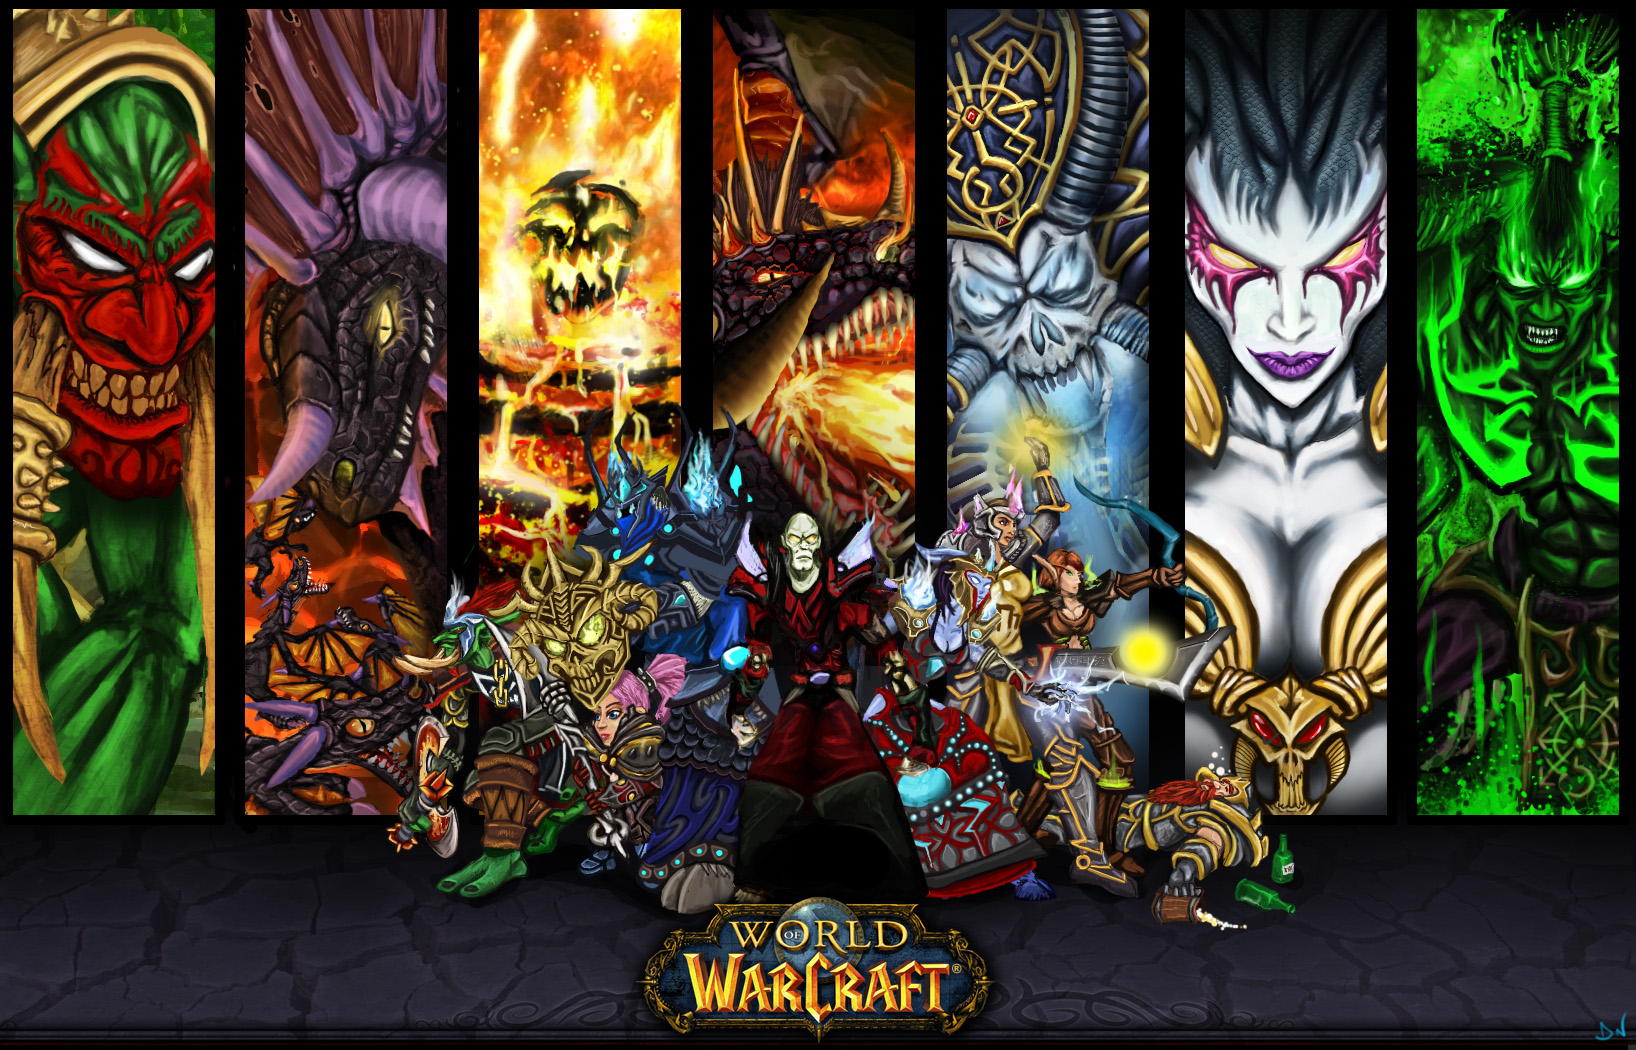 World Of Warcraft Wallpapers Hd 7443 Wallpaper Walldiskpaper